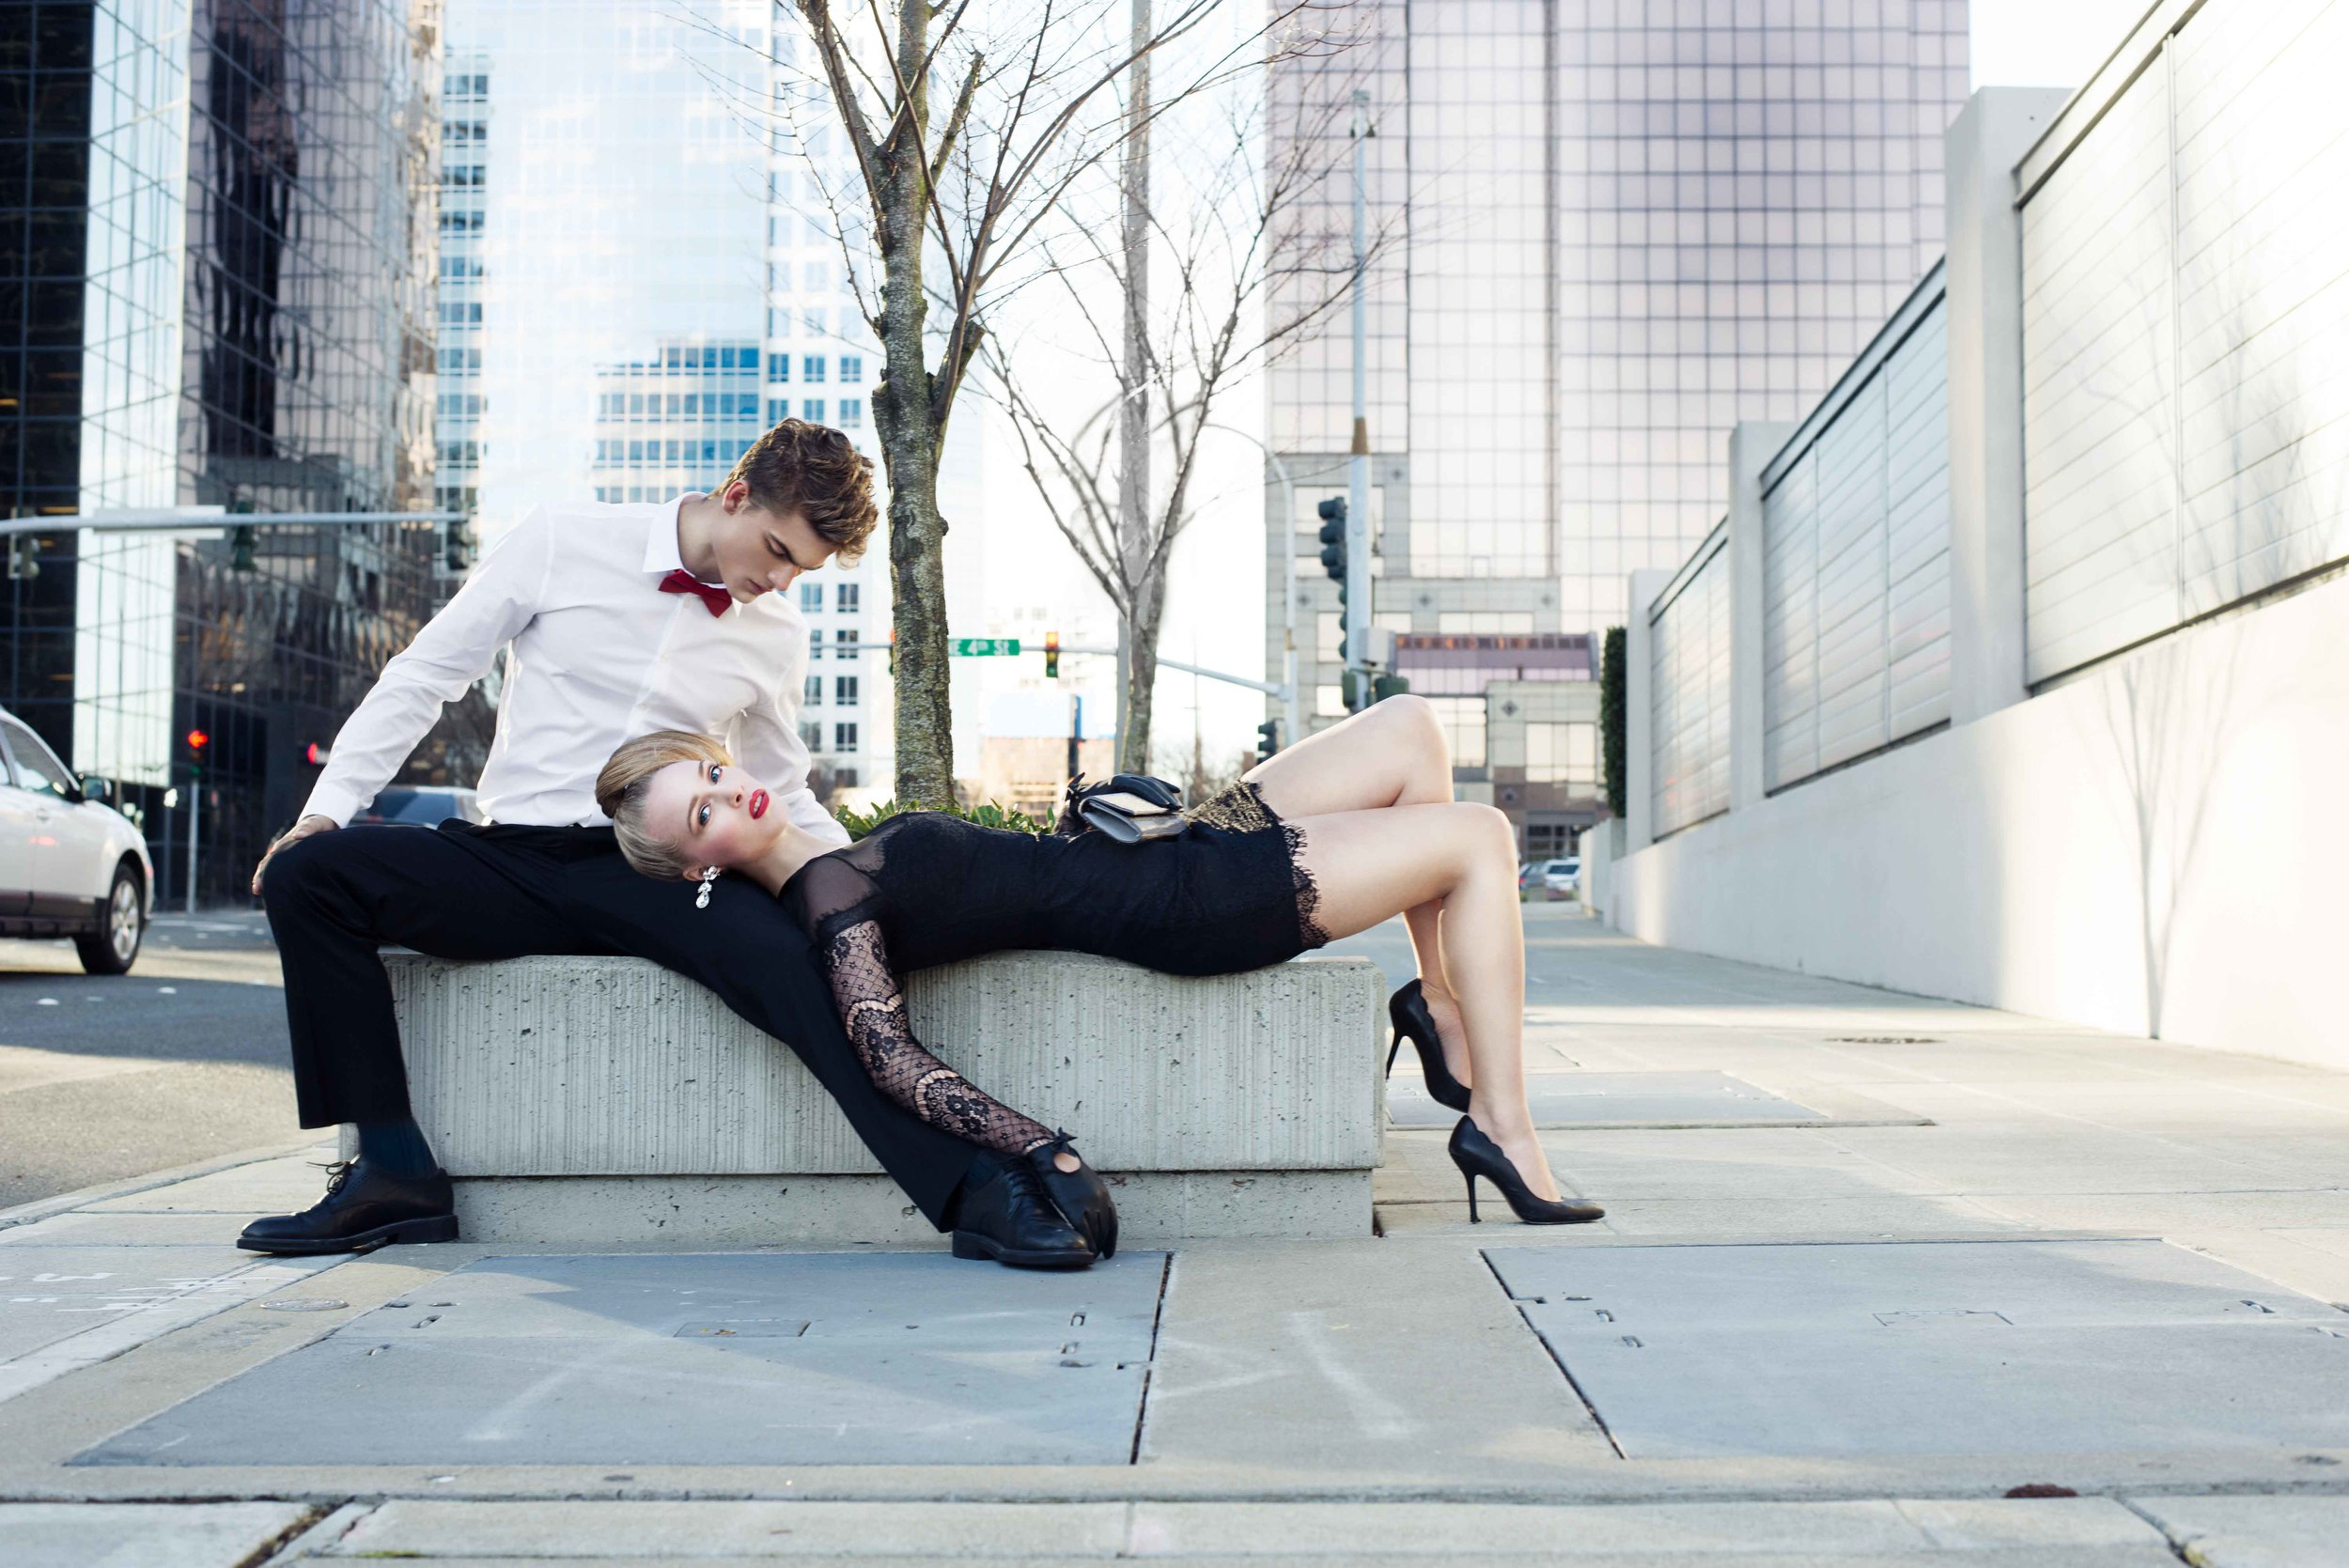 Beauty and Fashion photographer in Seattle, Bellevue, Vancouver BC., Italy,